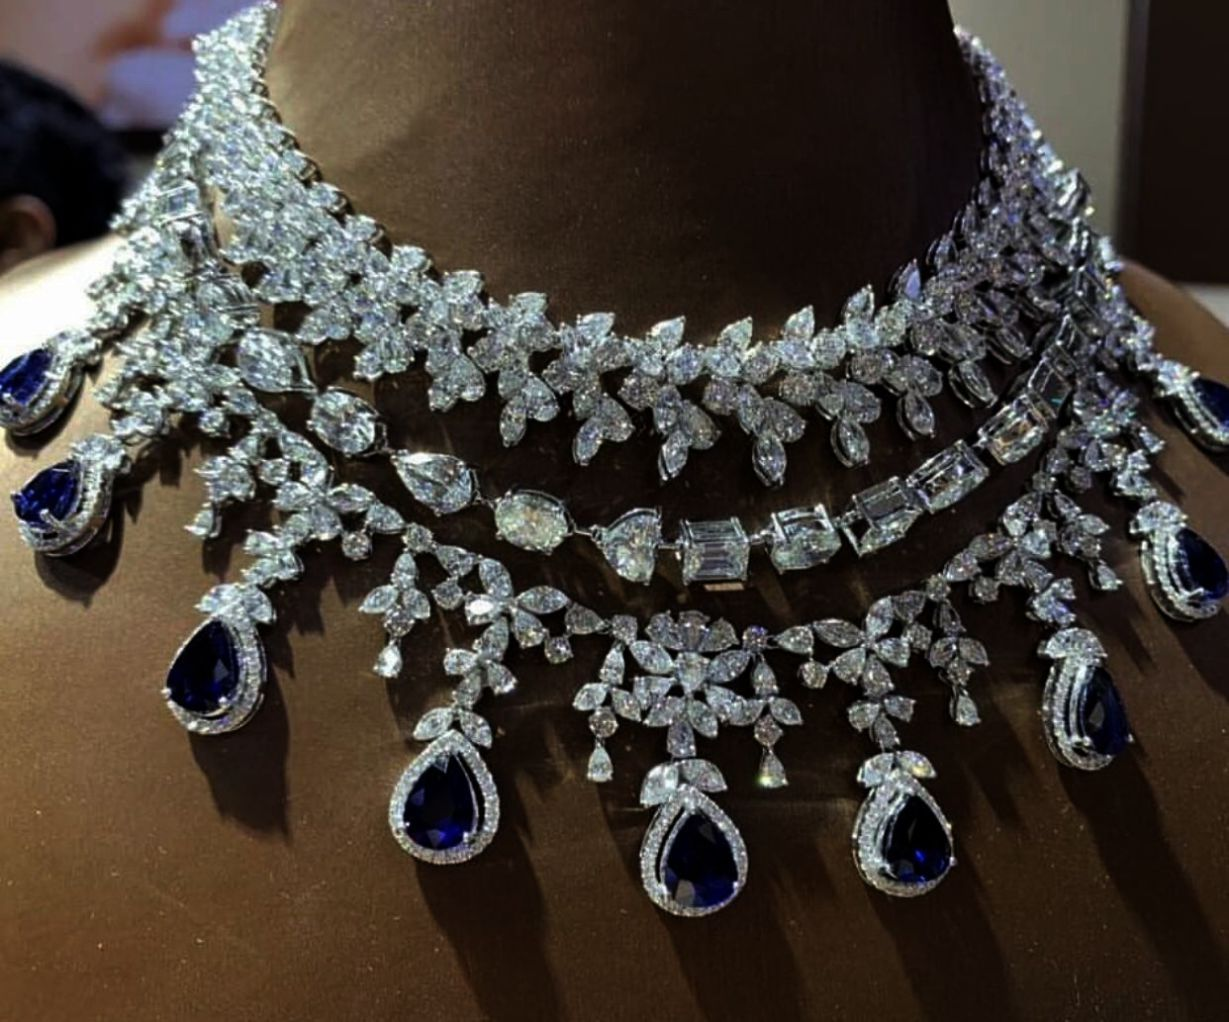 30++ Places that buy jewelry open near me ideas